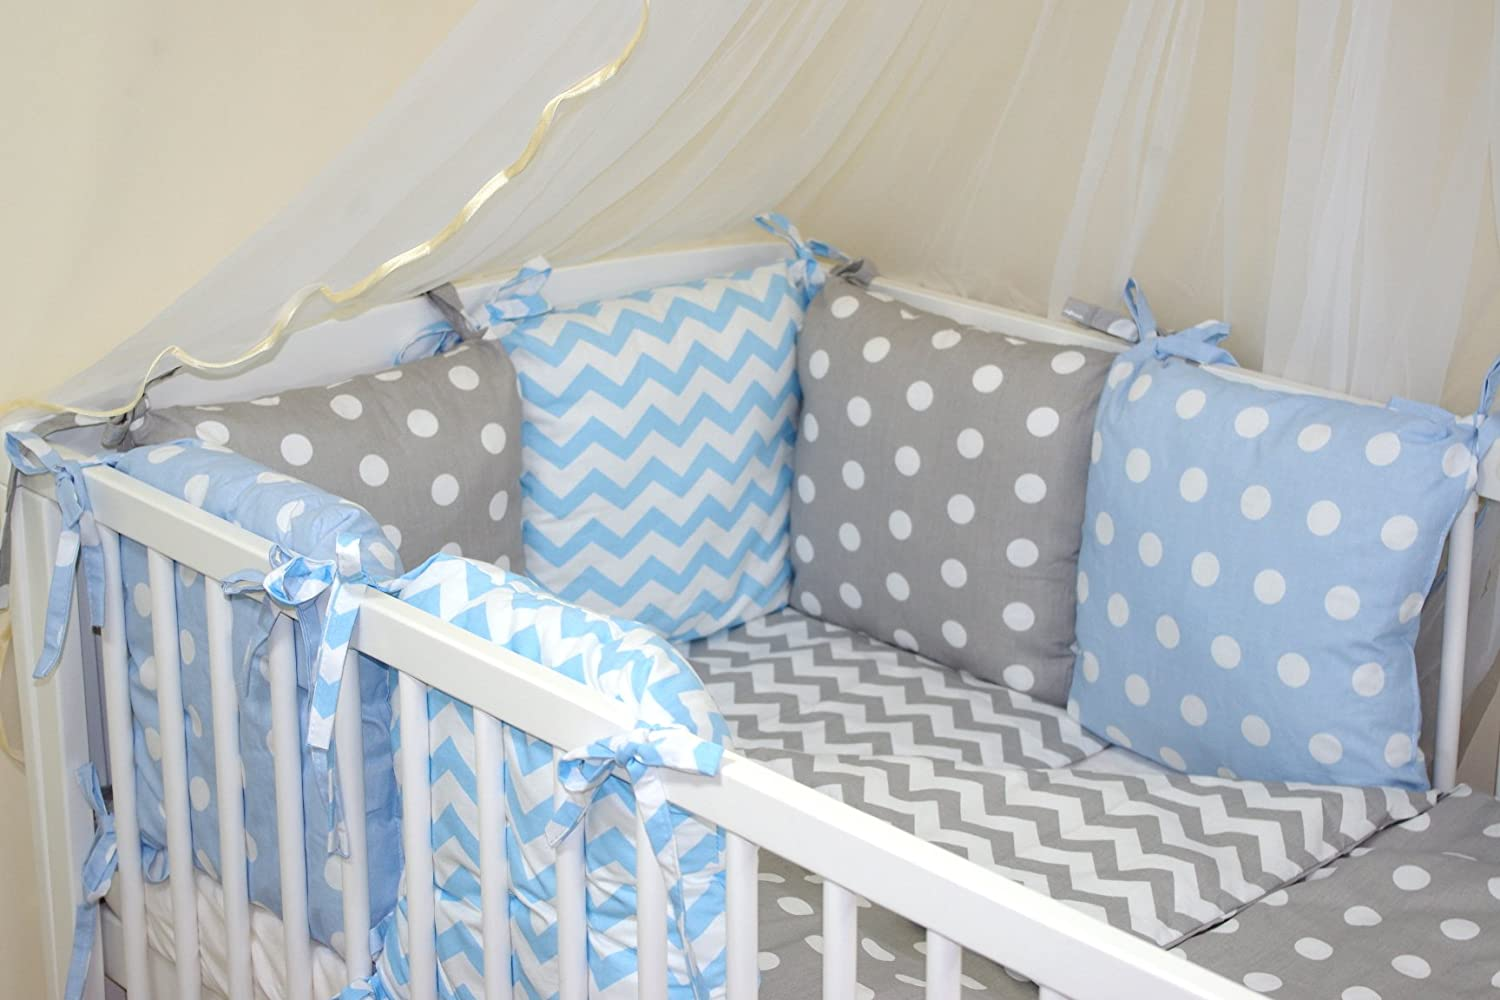 Baby bed and pillow - New 8 Pcs Baby Bedding Set For Cot Cotbed With Pillow Bumper 28 54 Colours 54 Amazon Co Uk Baby